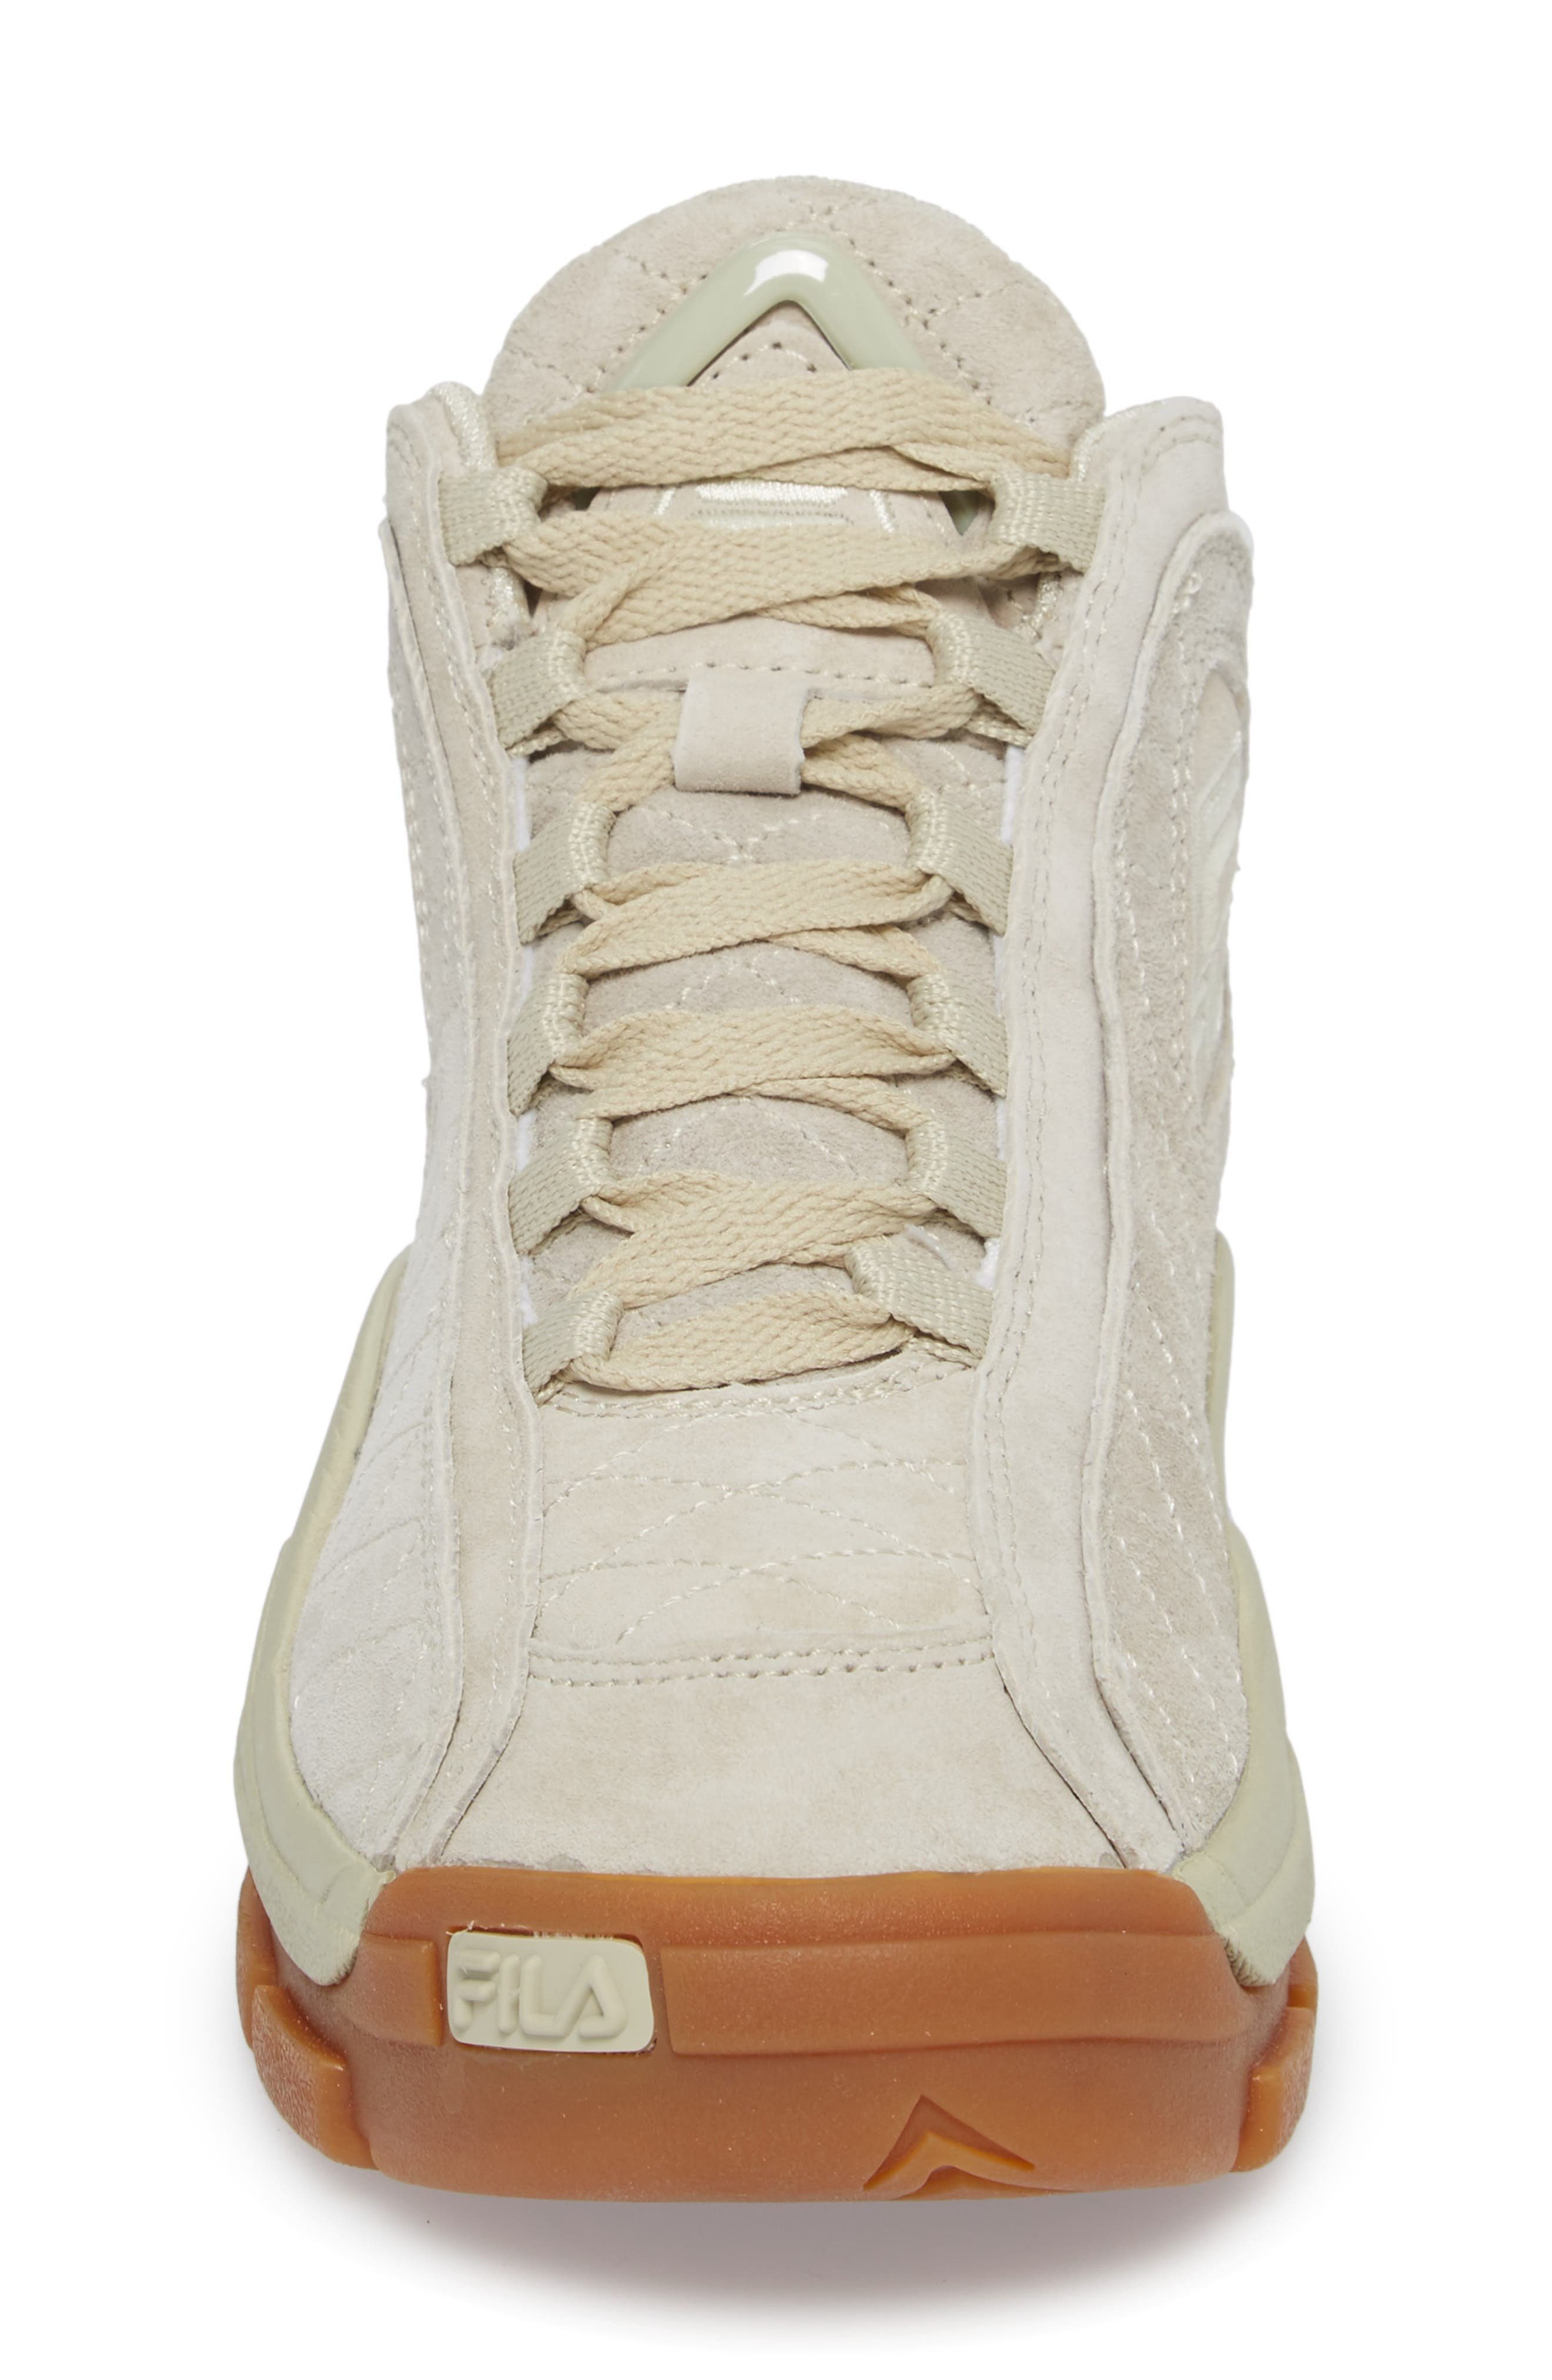 96 Quilted Mid-Top Sneaker,                             Alternate thumbnail 4, color,                             Cream/ Gum